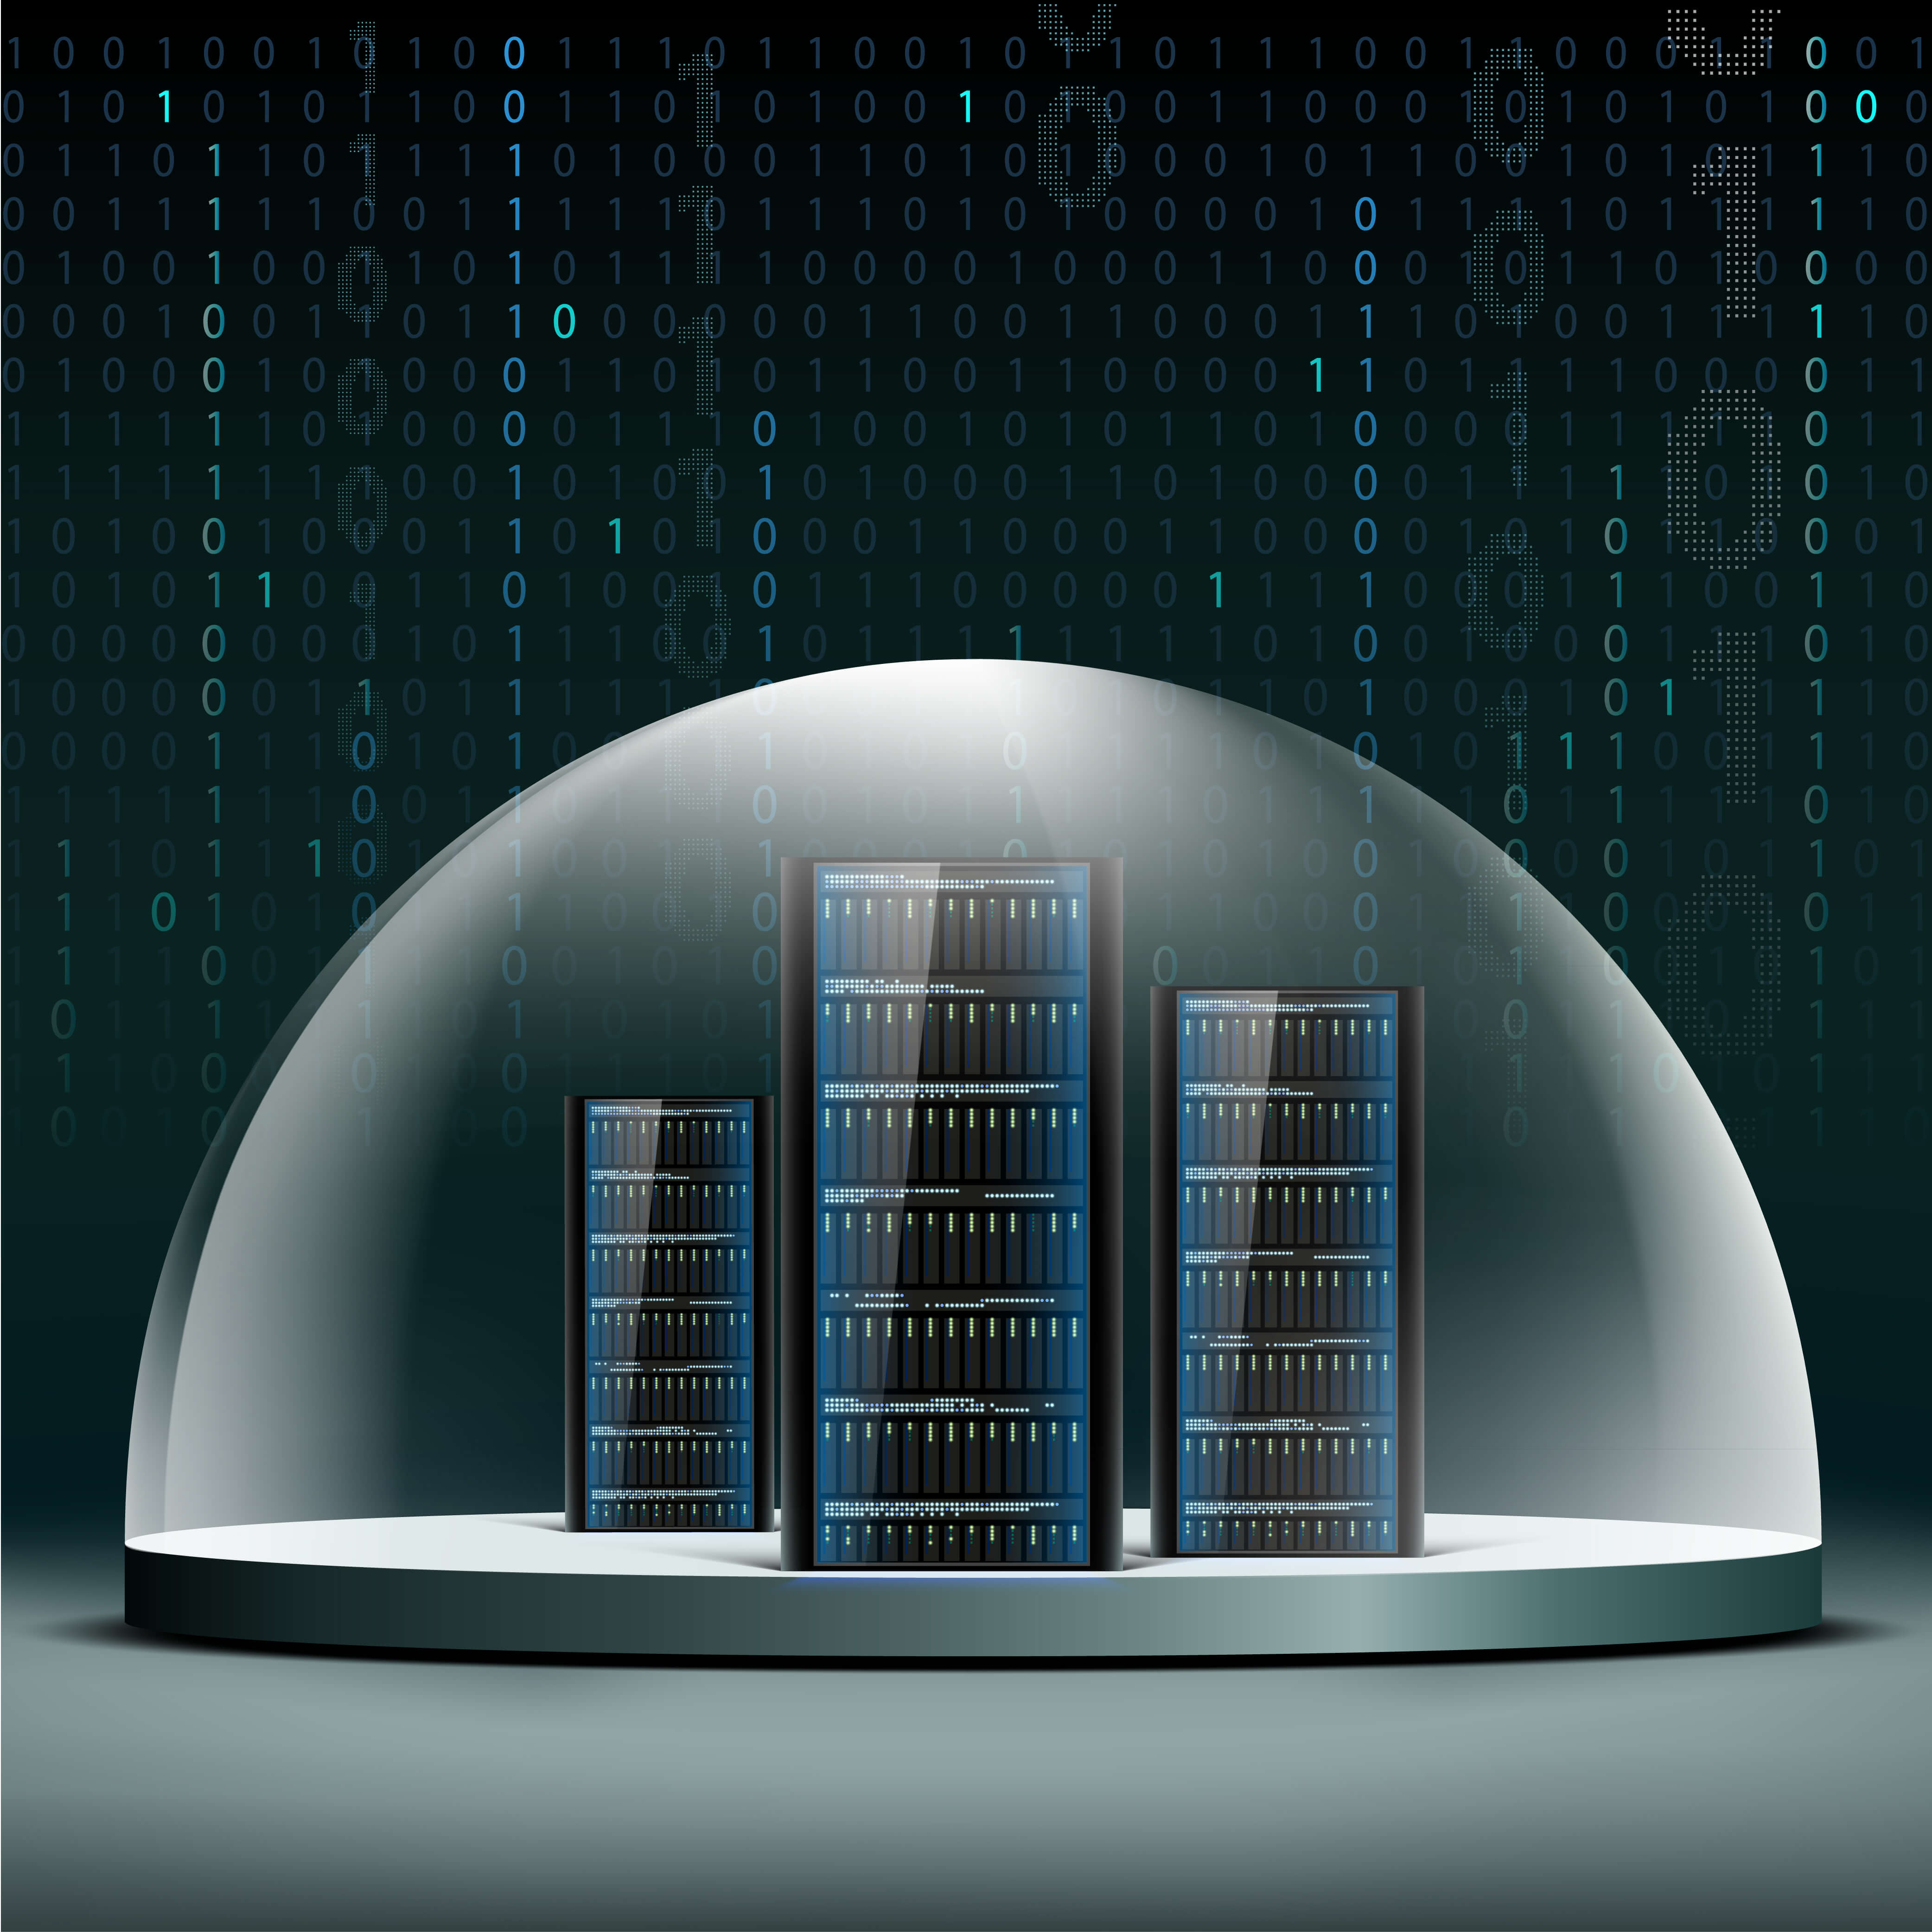 Why financial services companies want a deception solution for mainframes